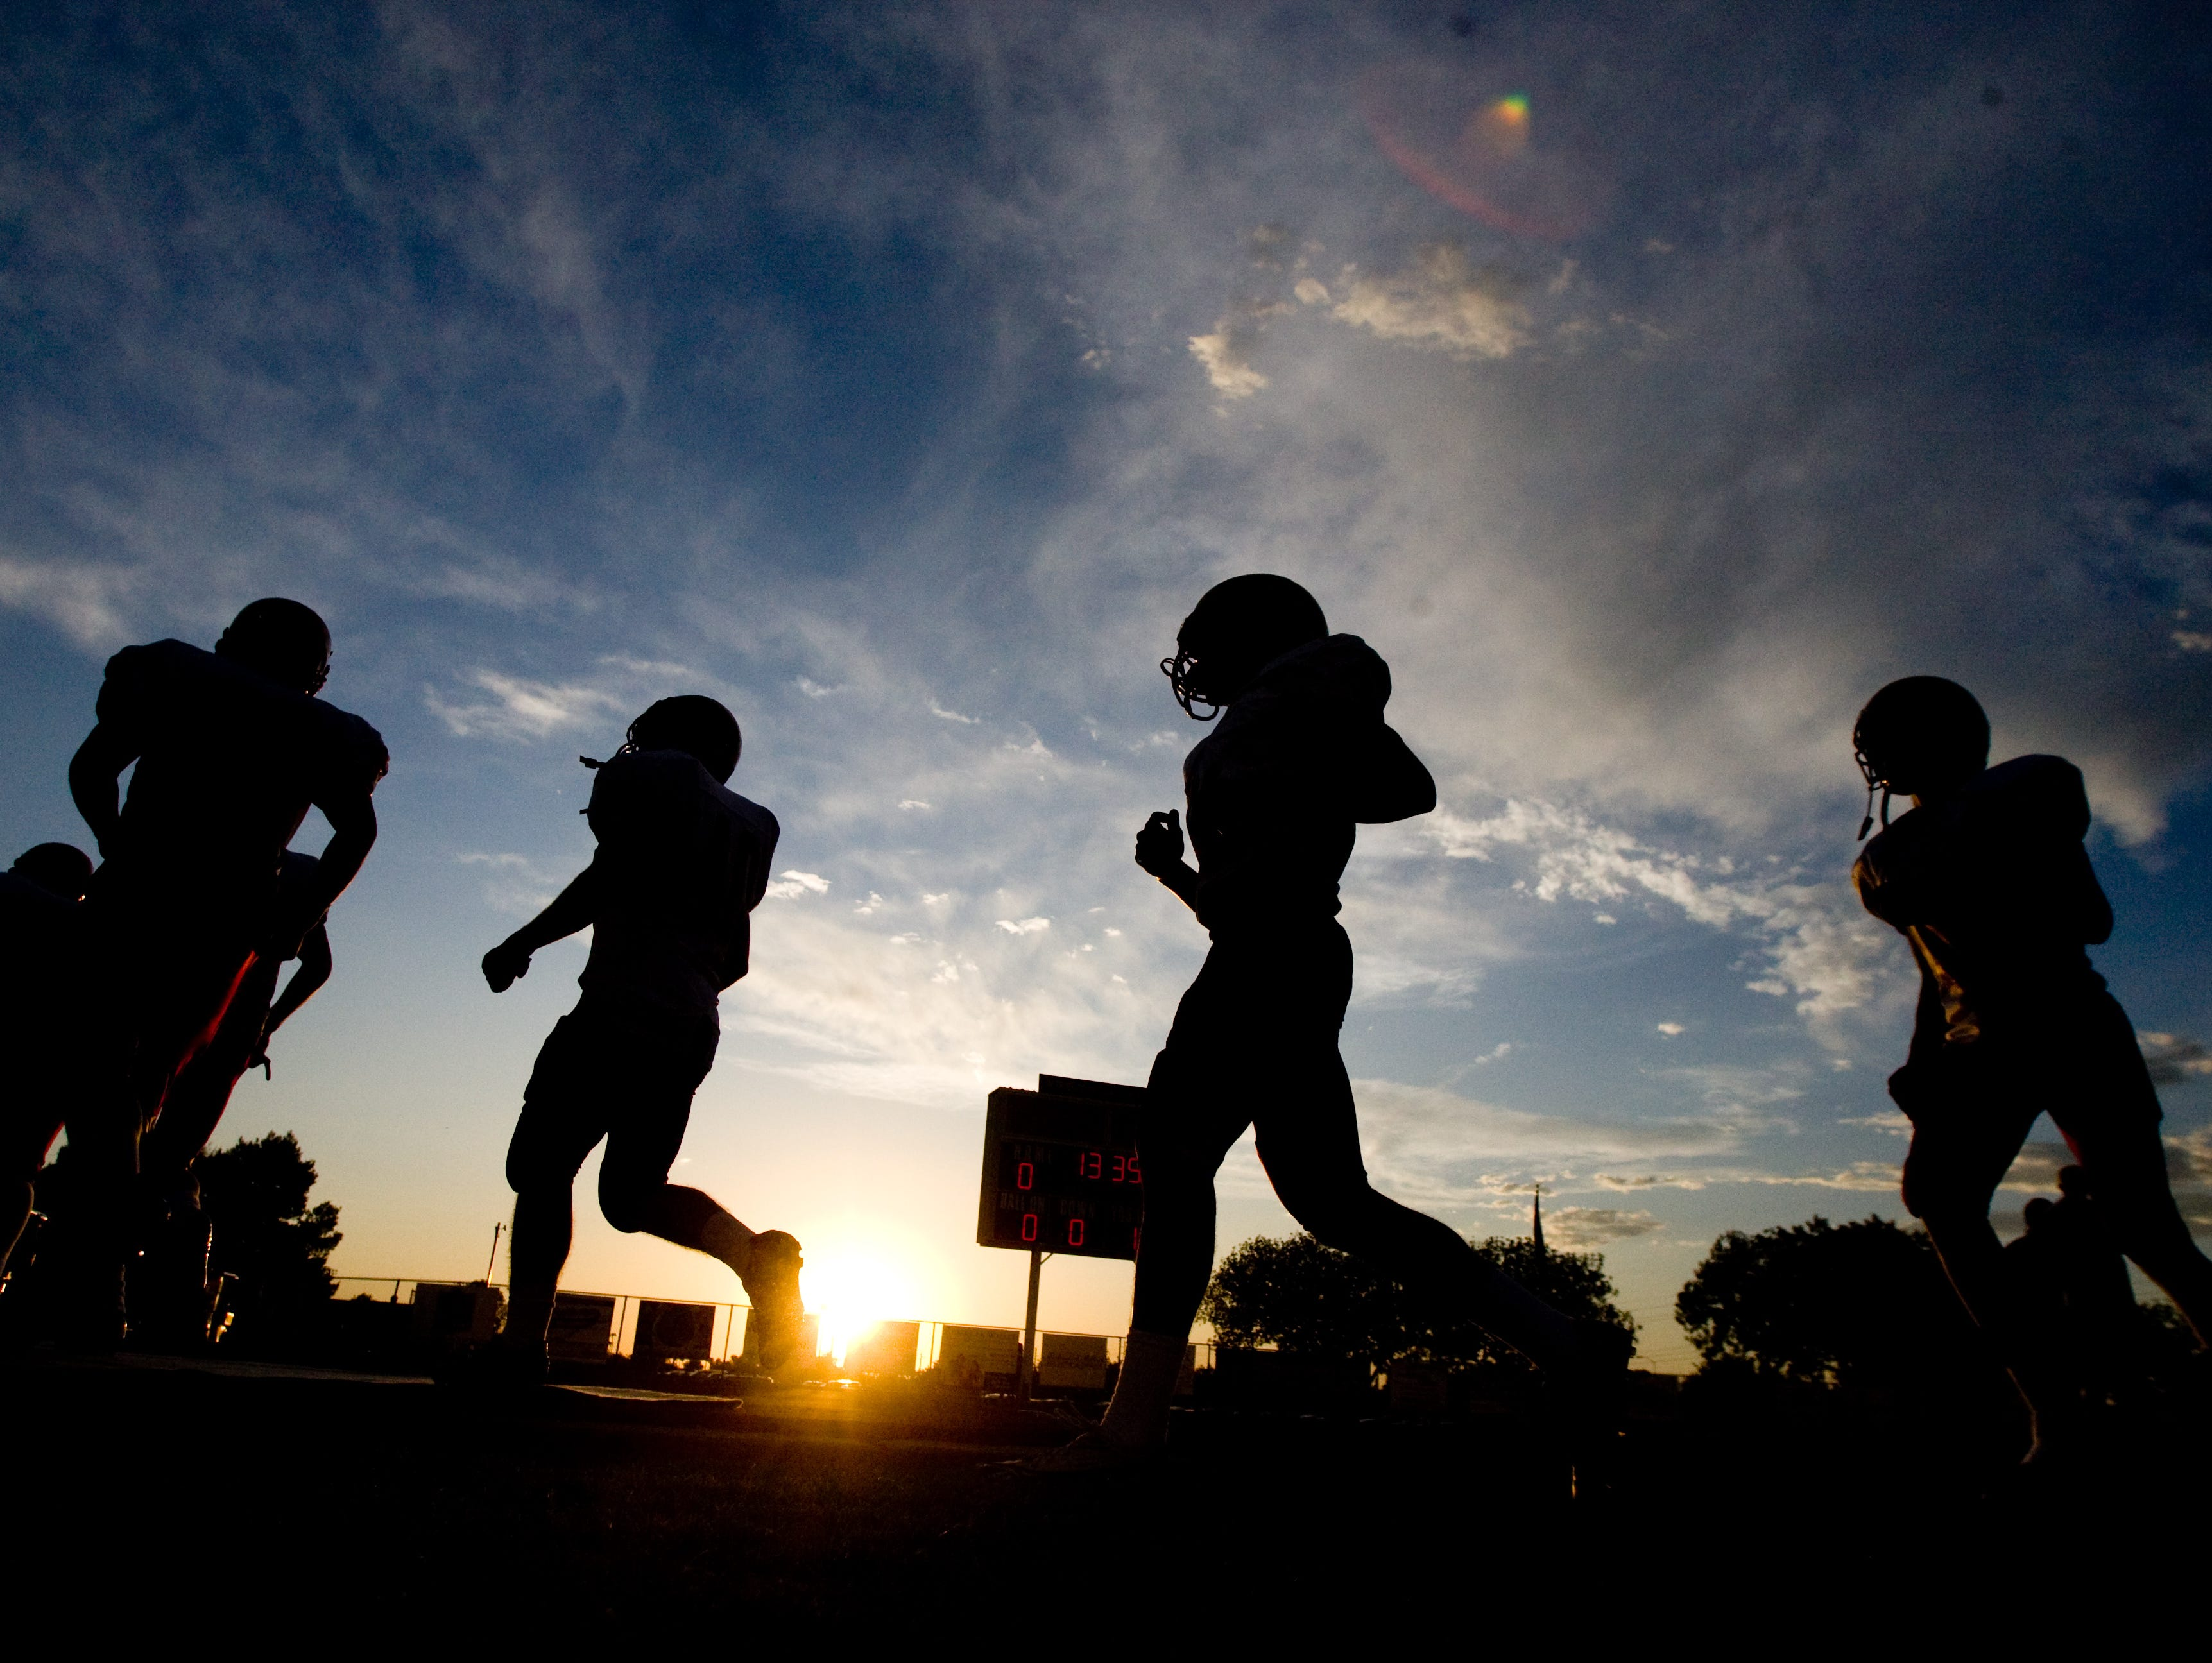 High school football players practice in the summer heat.